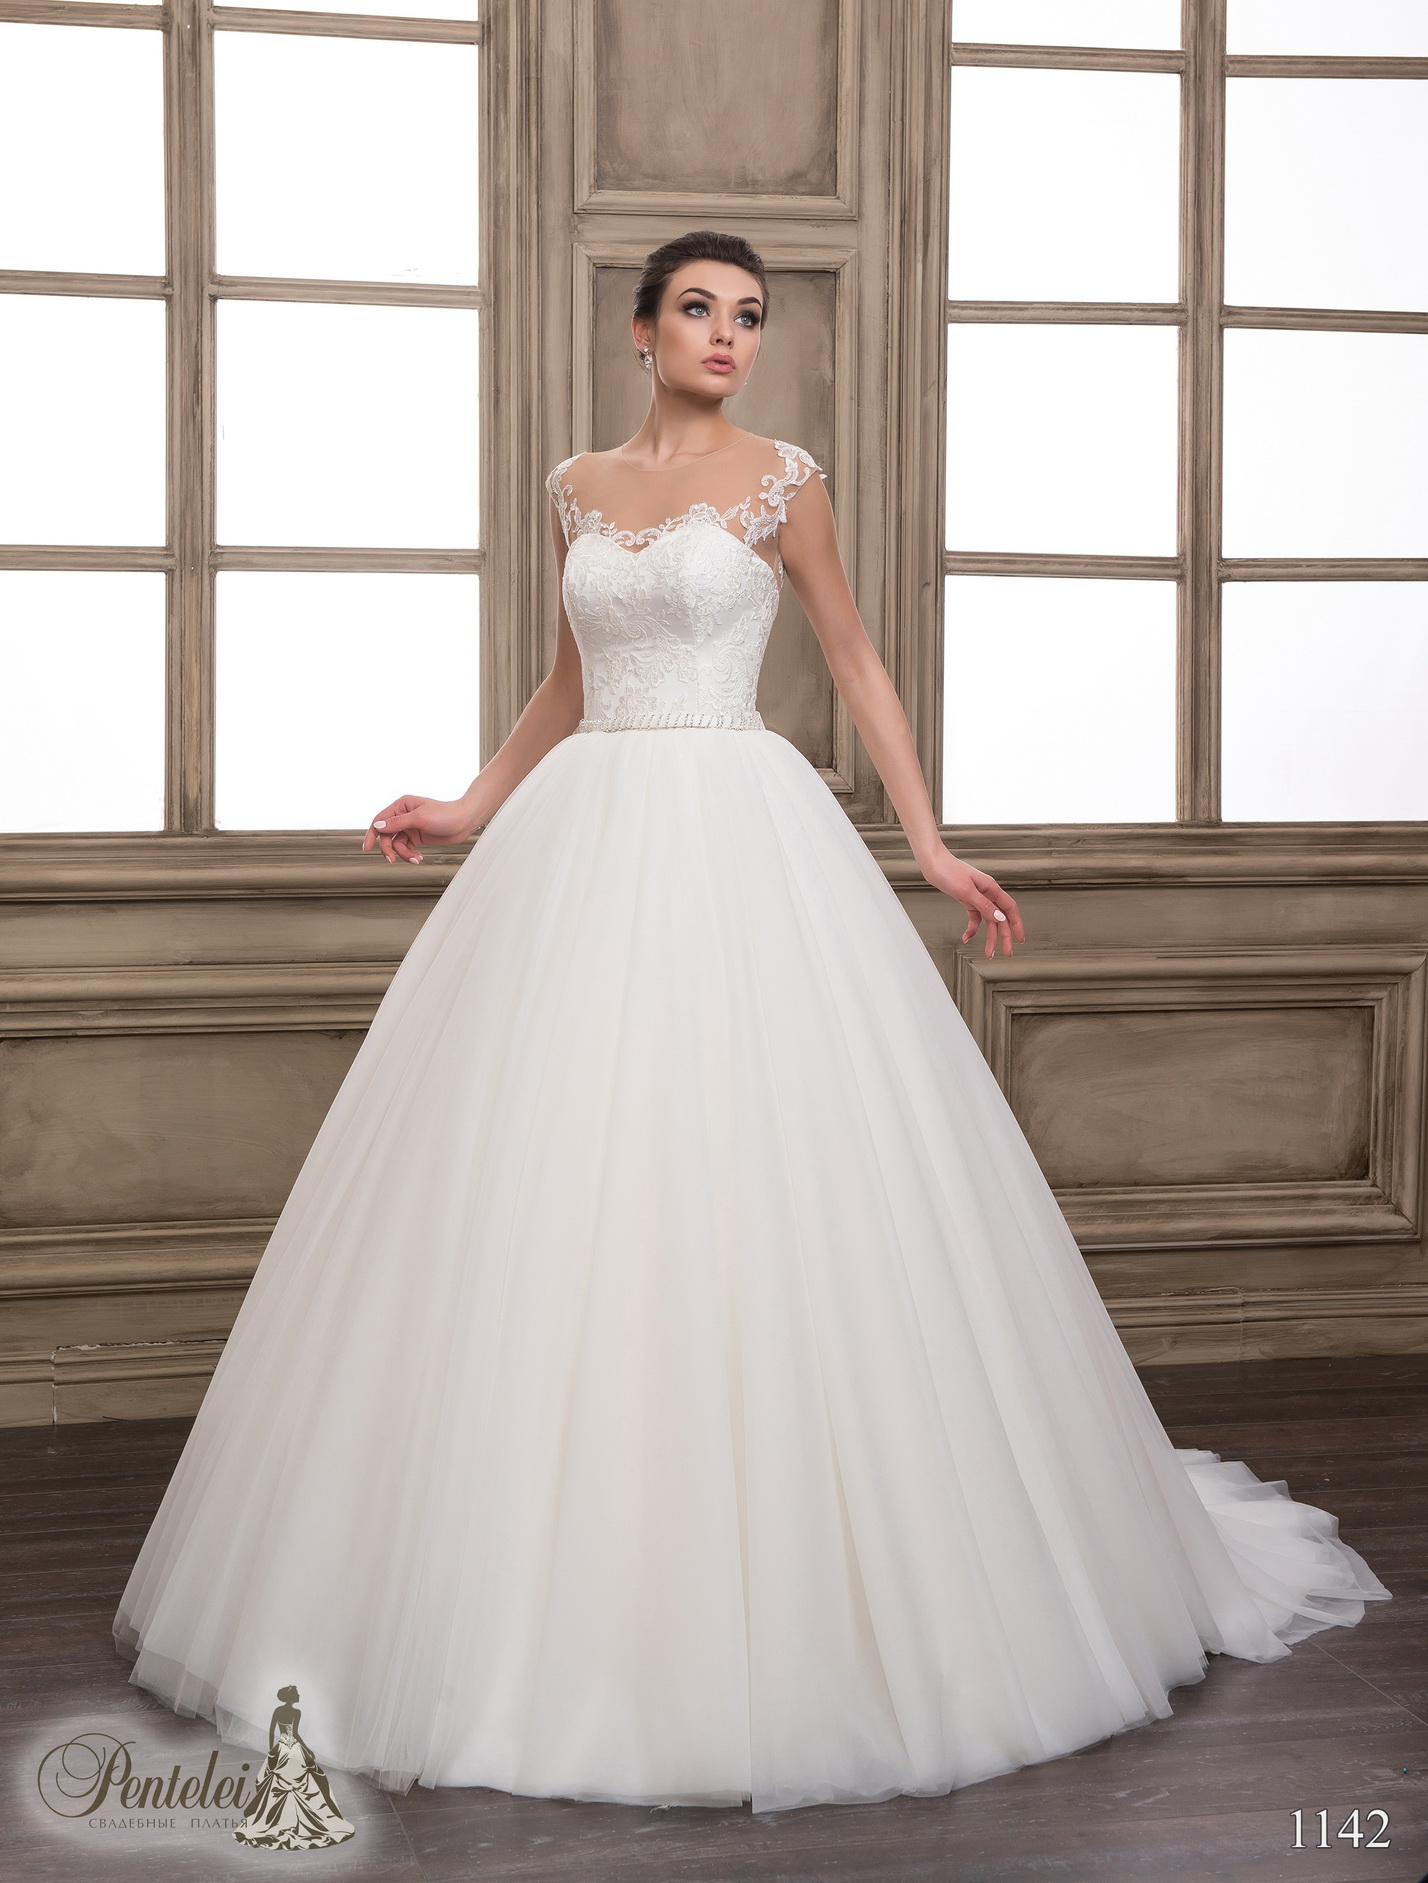 1142 | Buy wedding dresses wholesale from Pentelei